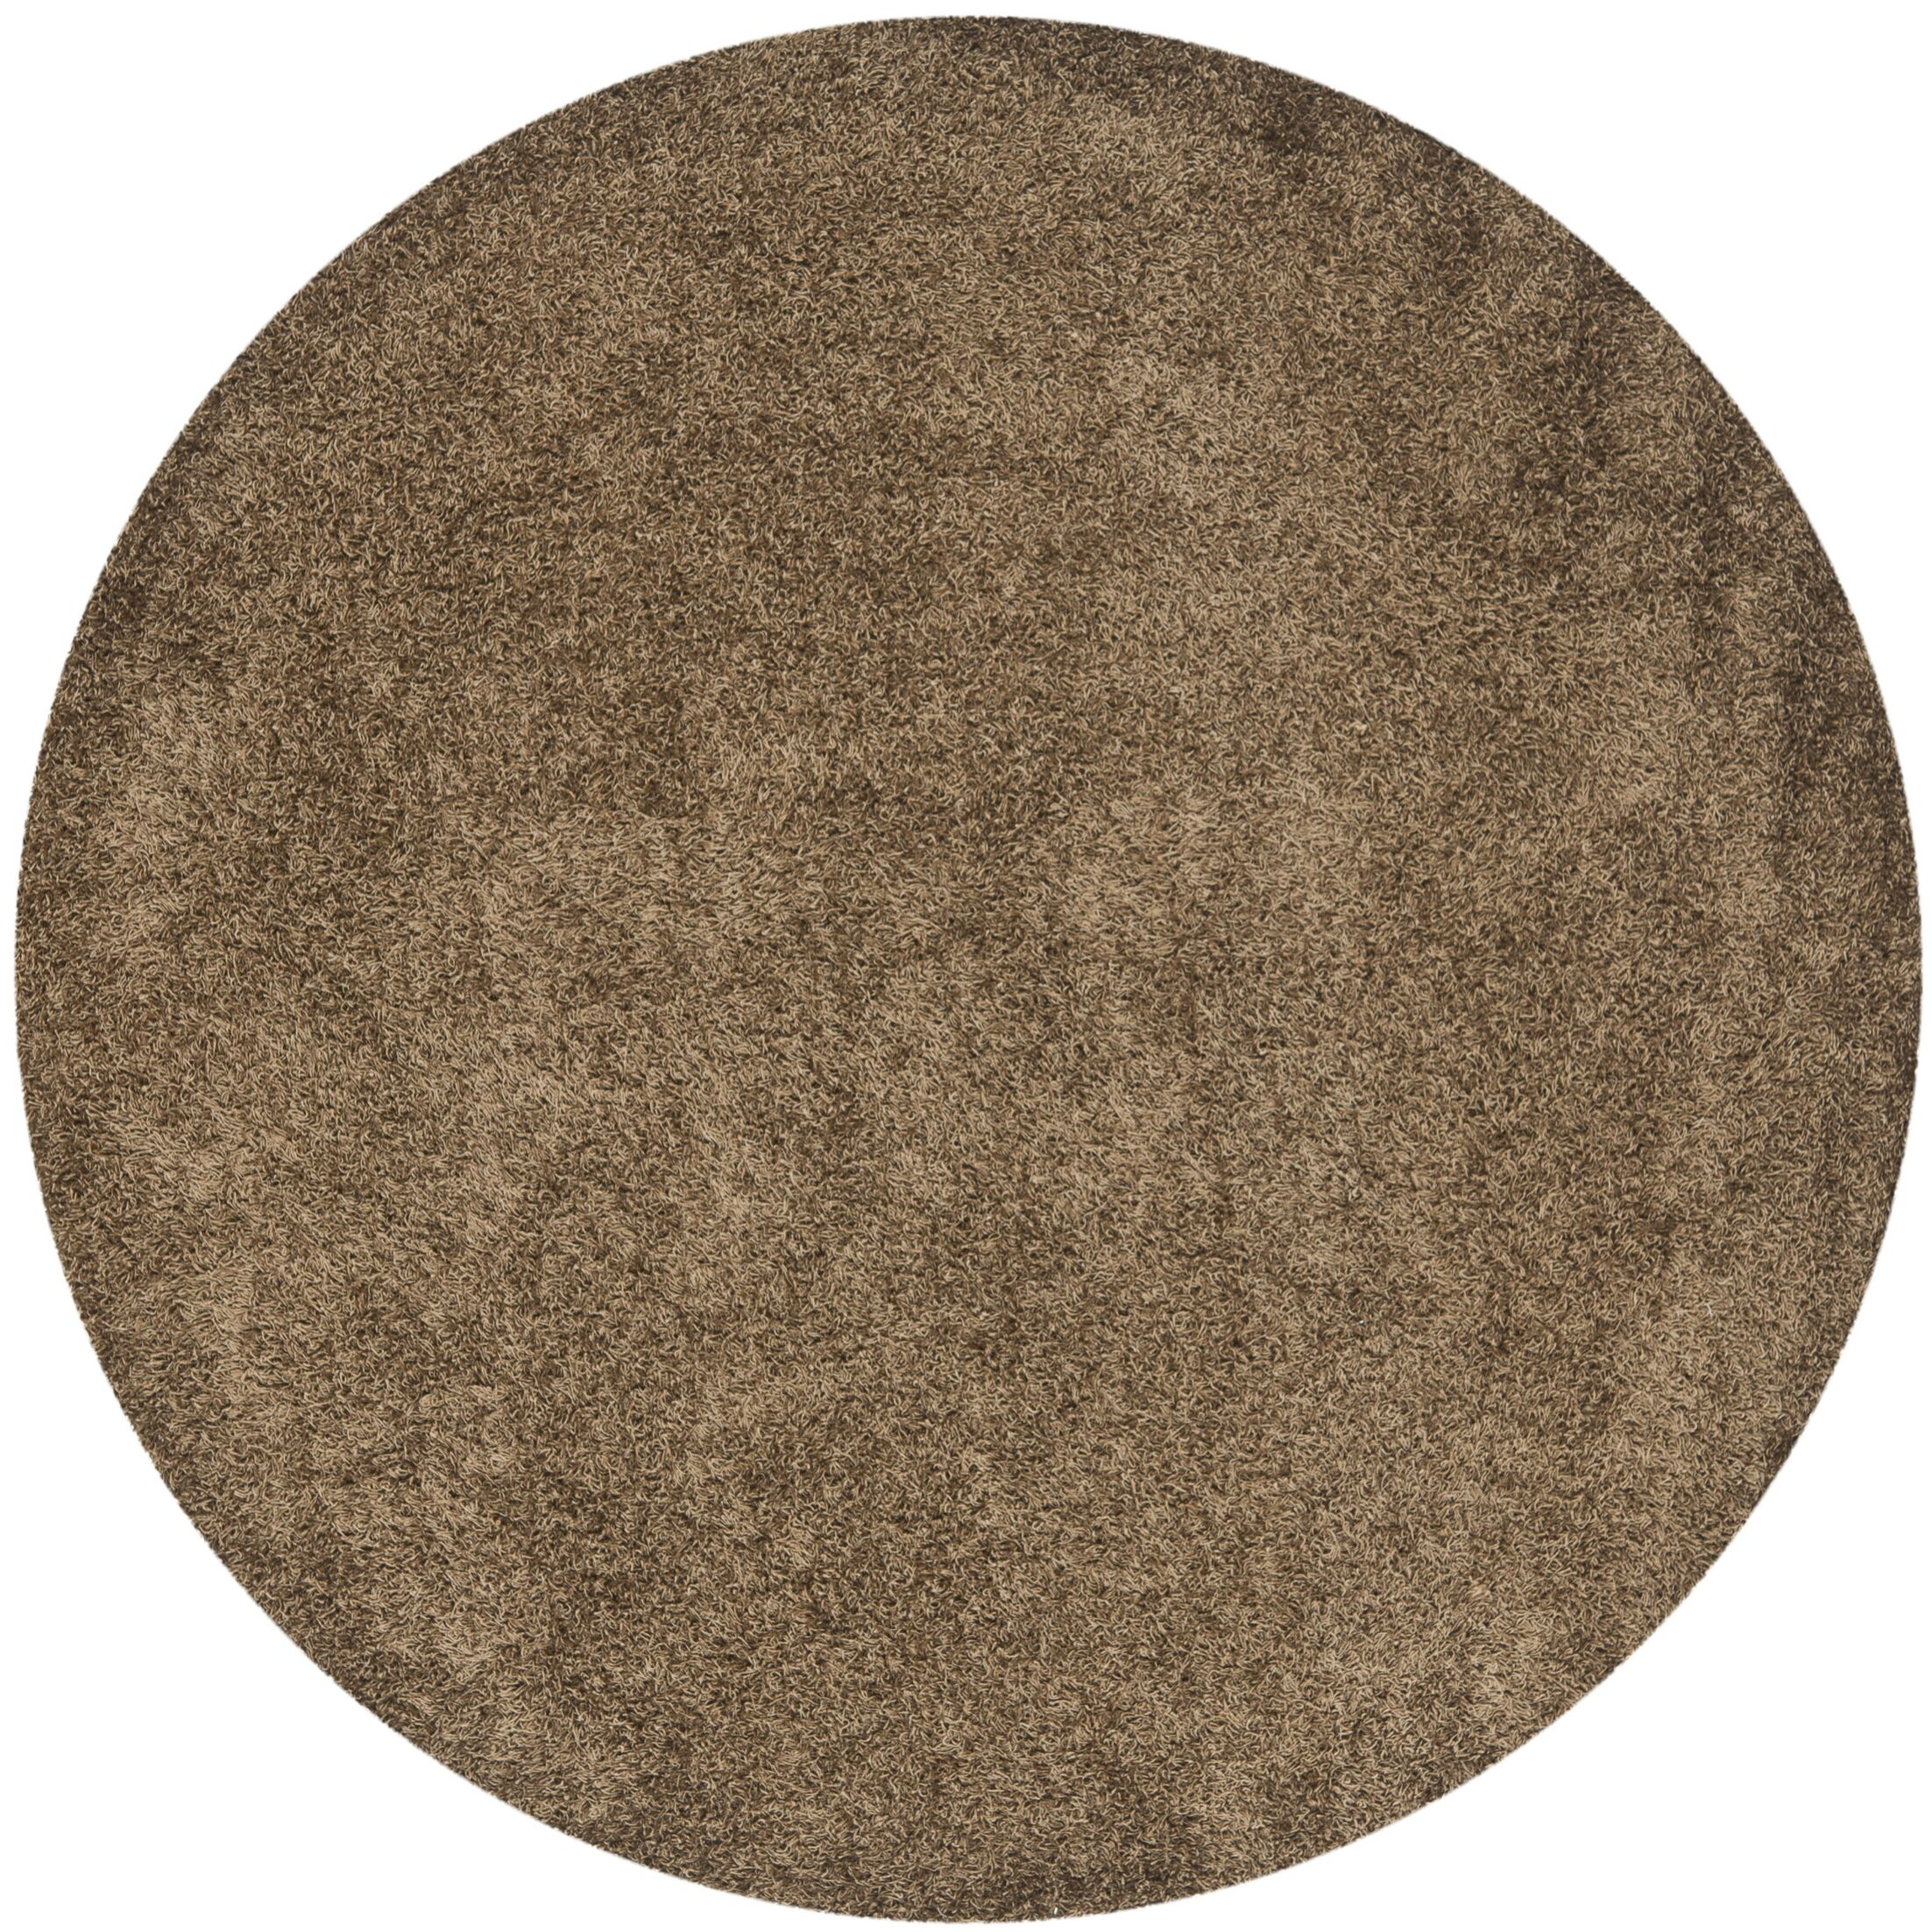 Starr Hill Light Brown Area Rug Rug Size: Round 7'